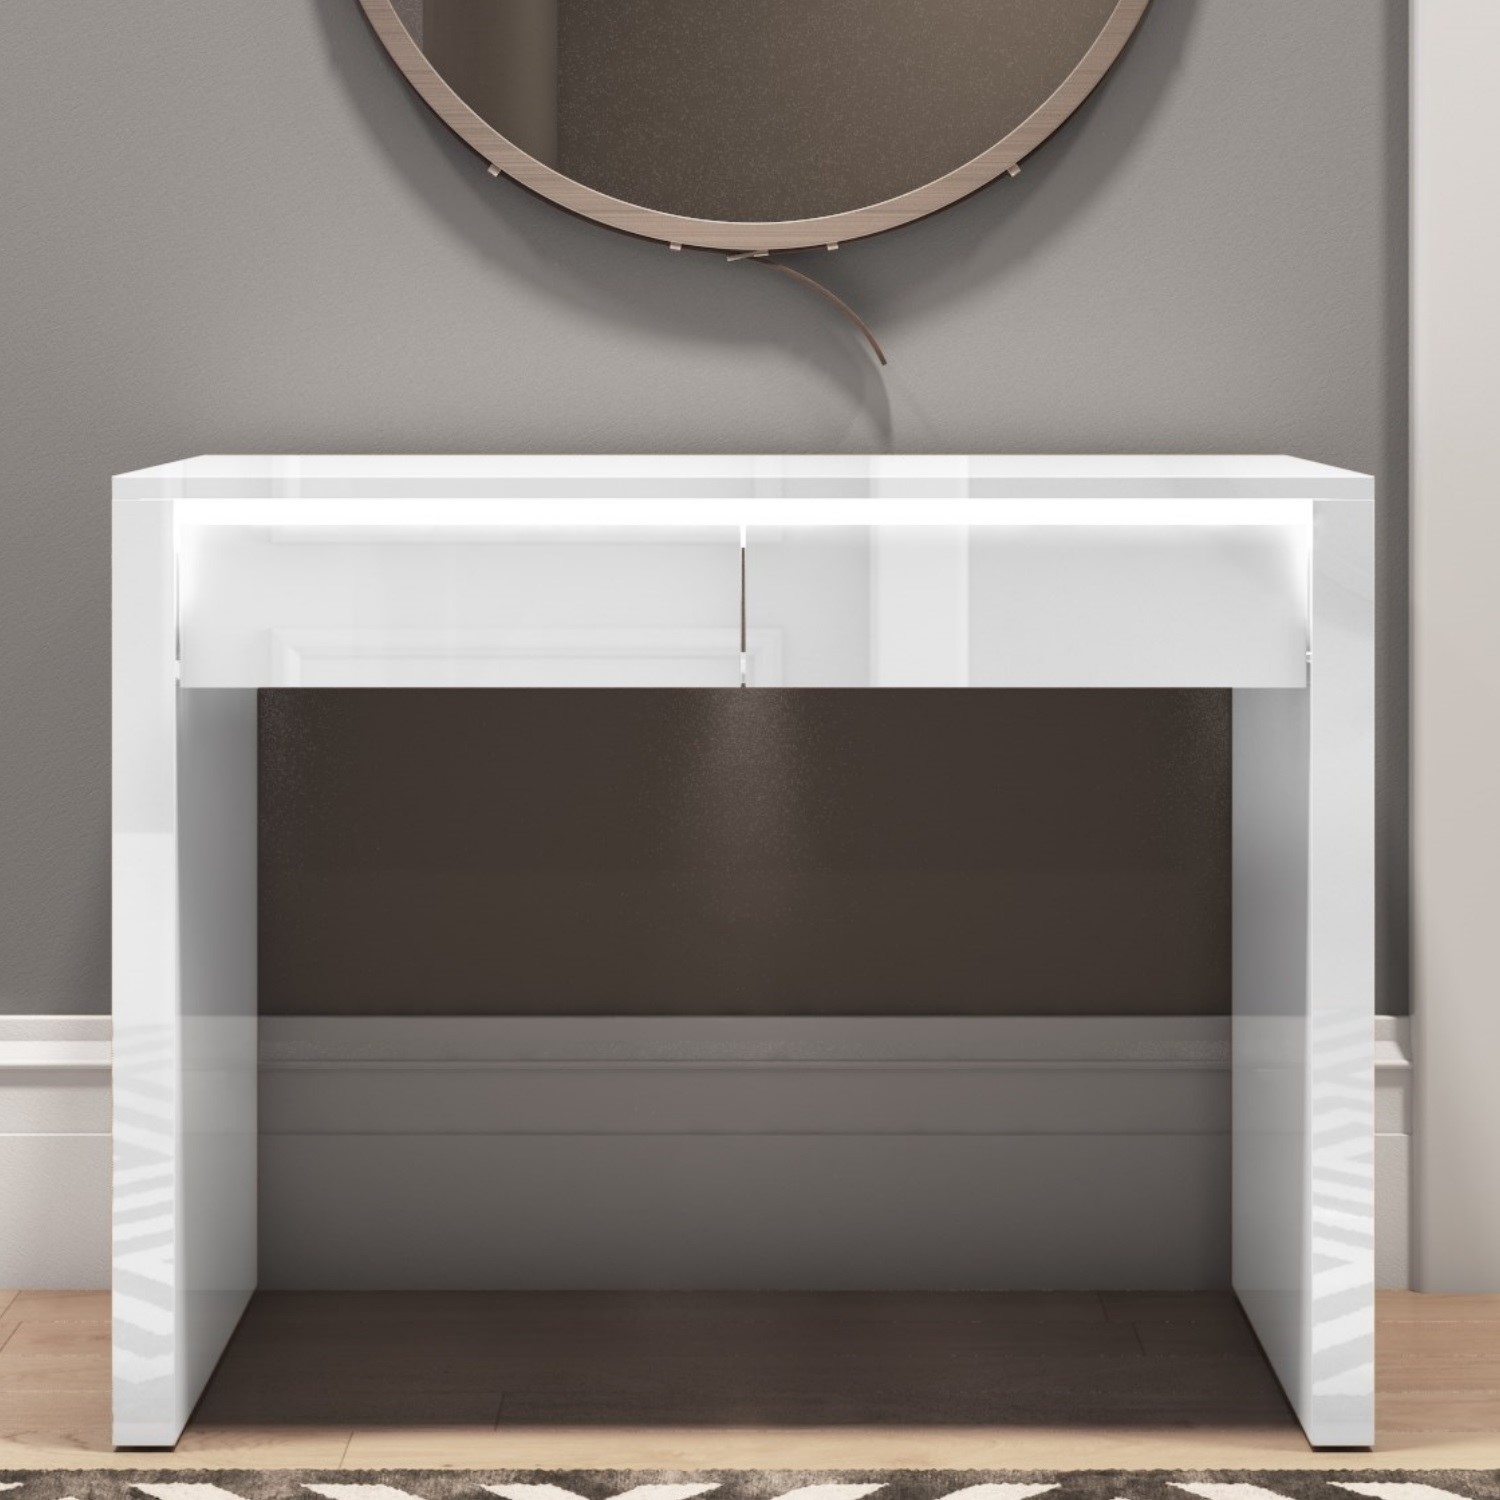 Fabulous Details About Tiffany White High Gloss Console Table With Led Feature 2 Drawers Tiff035 Gmtry Best Dining Table And Chair Ideas Images Gmtryco